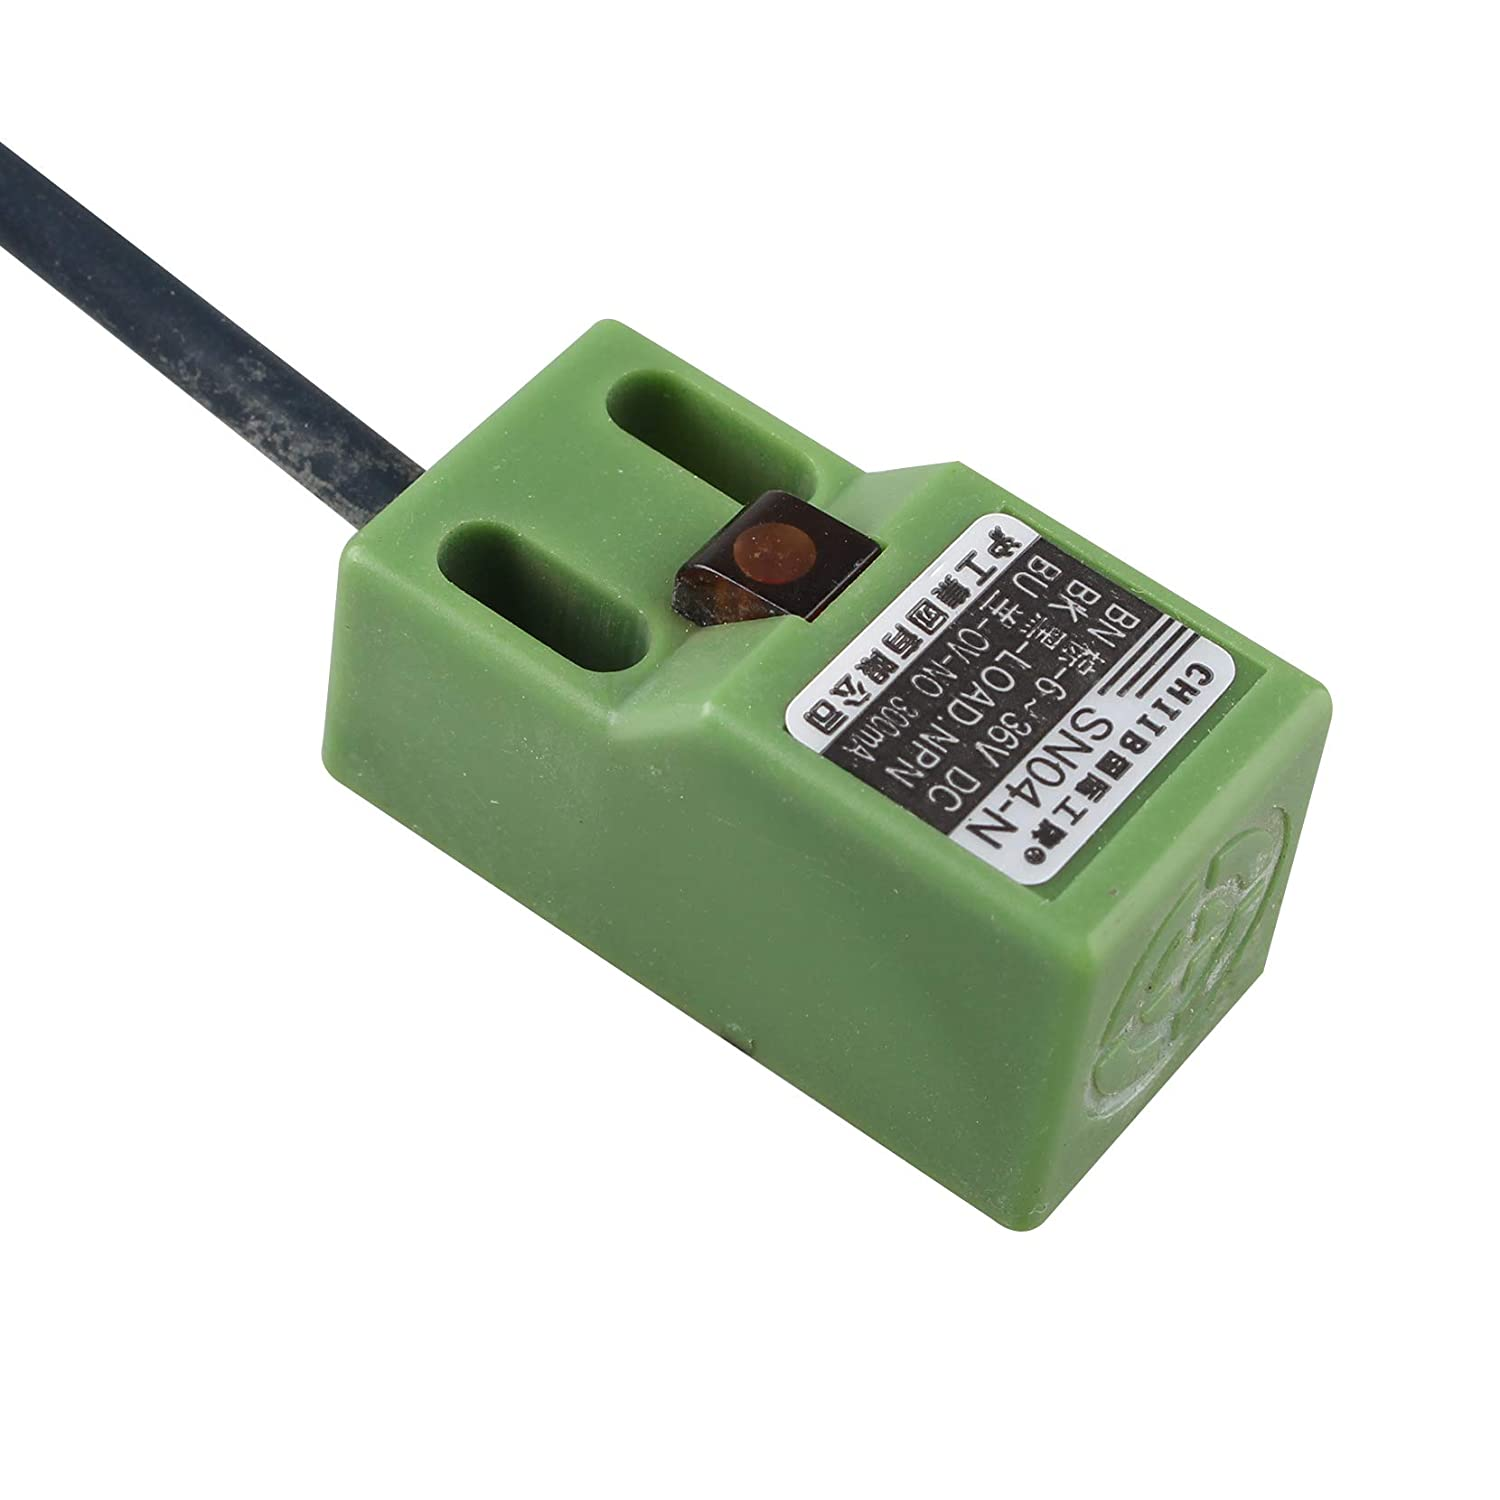 DC 6-36V Auto Leveling Sensor Green SN04-N Auto Self-Leveling Heatbed Position Adjustment Inductive Proximity Sensor with Screws for 3D Printer Anet A8 RepRap Prusa DIY i3